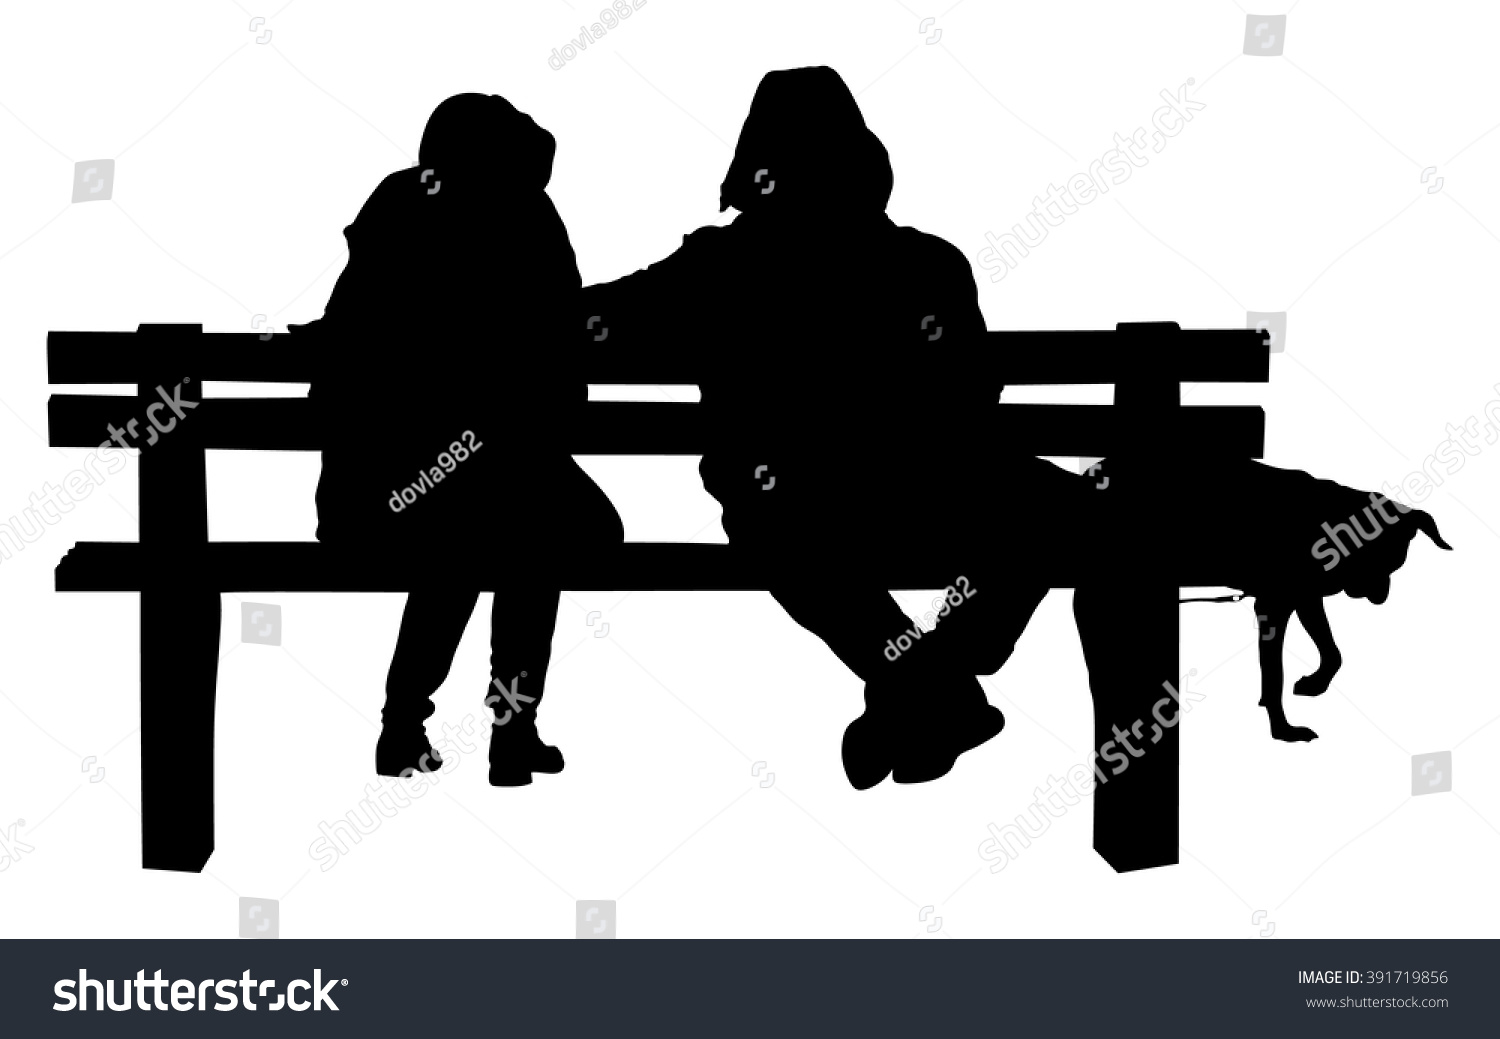 Couple On Bench Dog Two Lovers Stock Vector 391719856 - Shutterstock for People On Bench Silhouette  131fsj